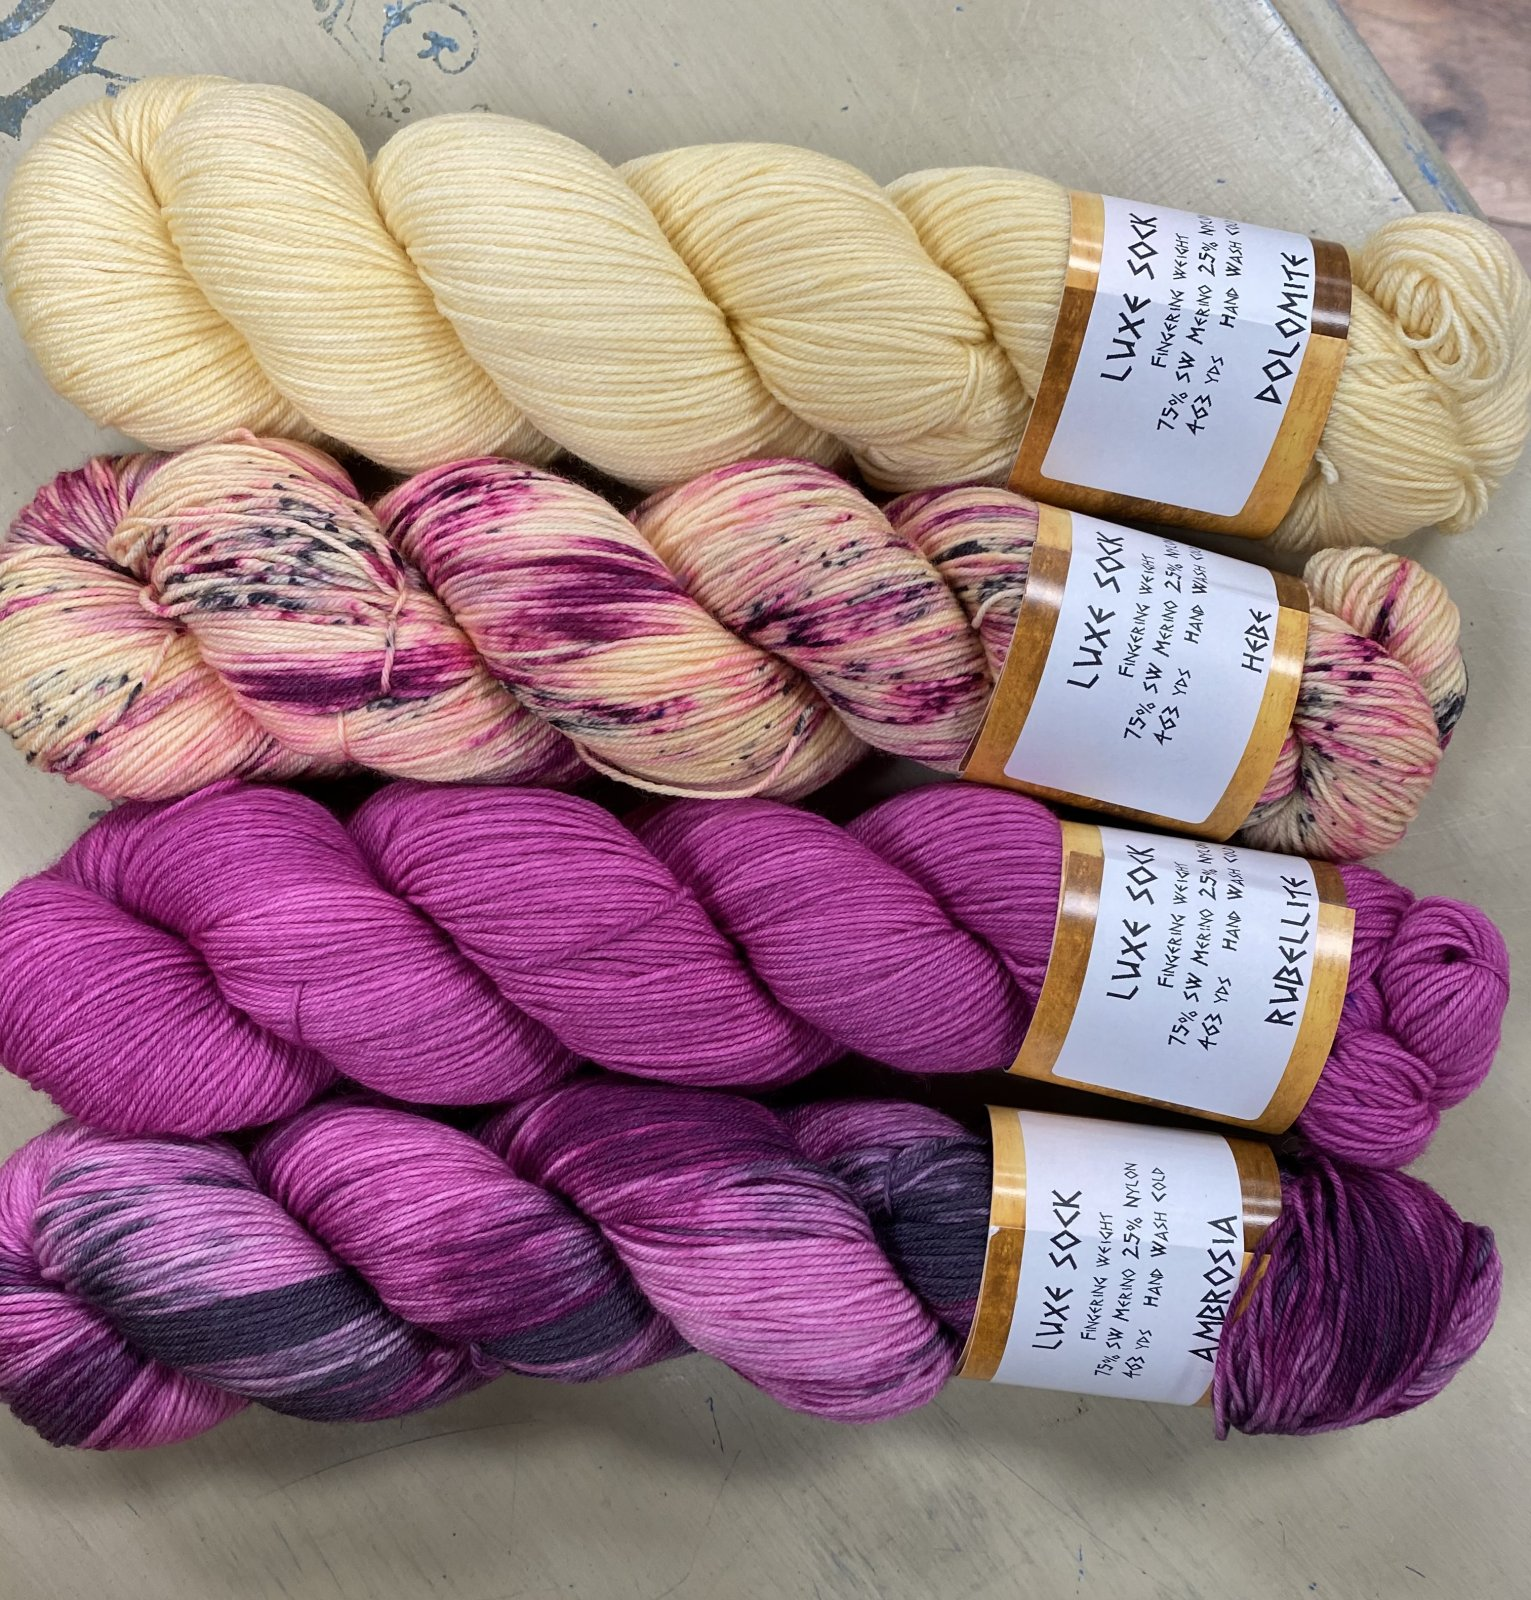 Jem Luxe Fibers Hebe Collection